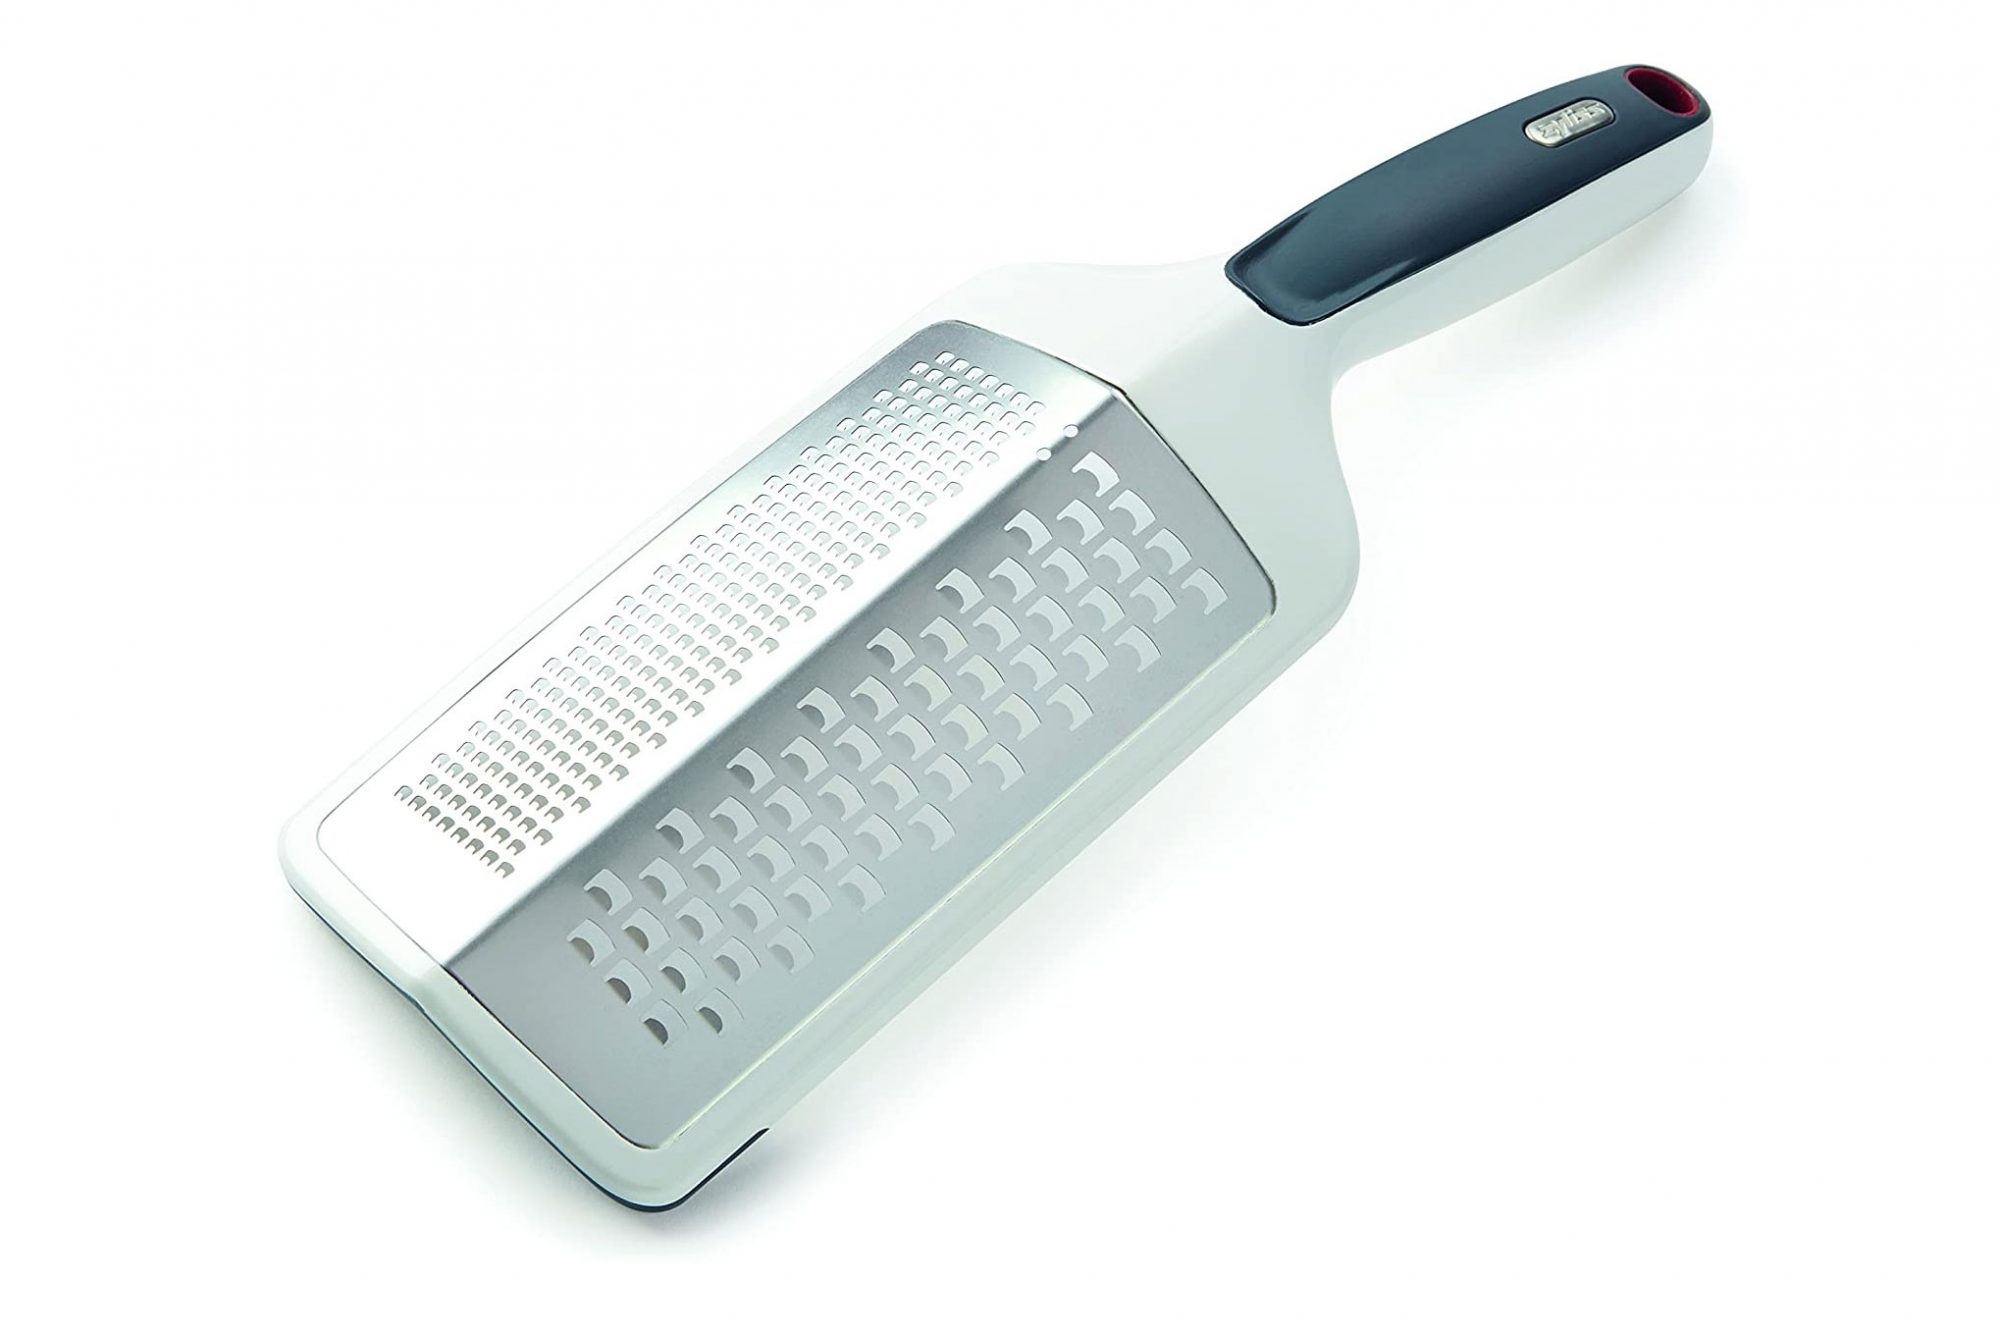 Zyliss Hand Held Grater in white on white background